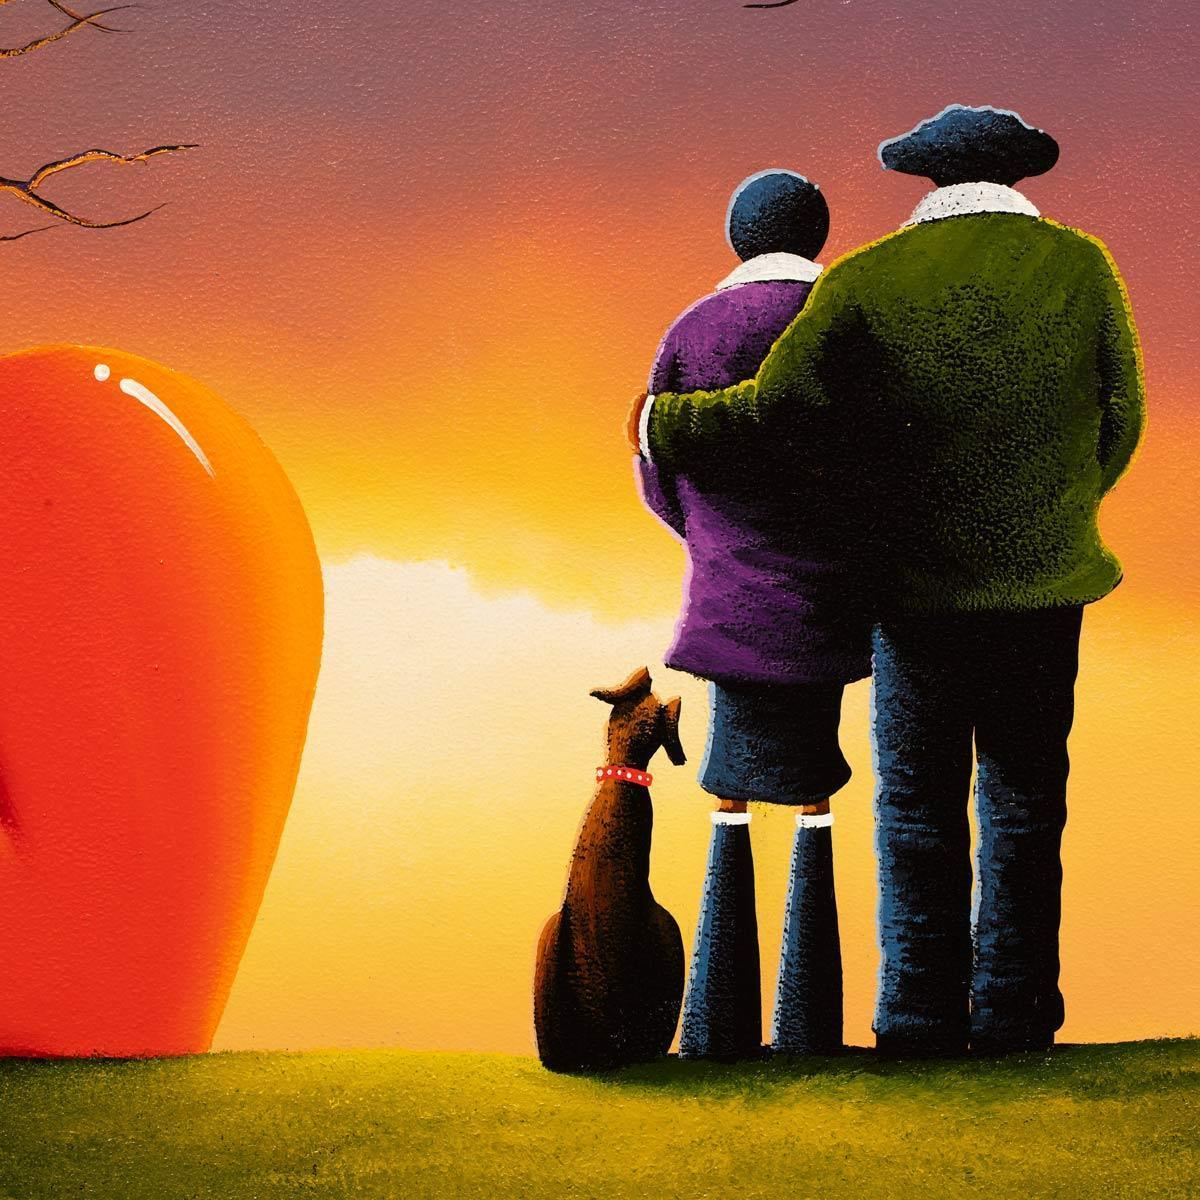 Hold Me Close To You - Original David Renshaw Framed